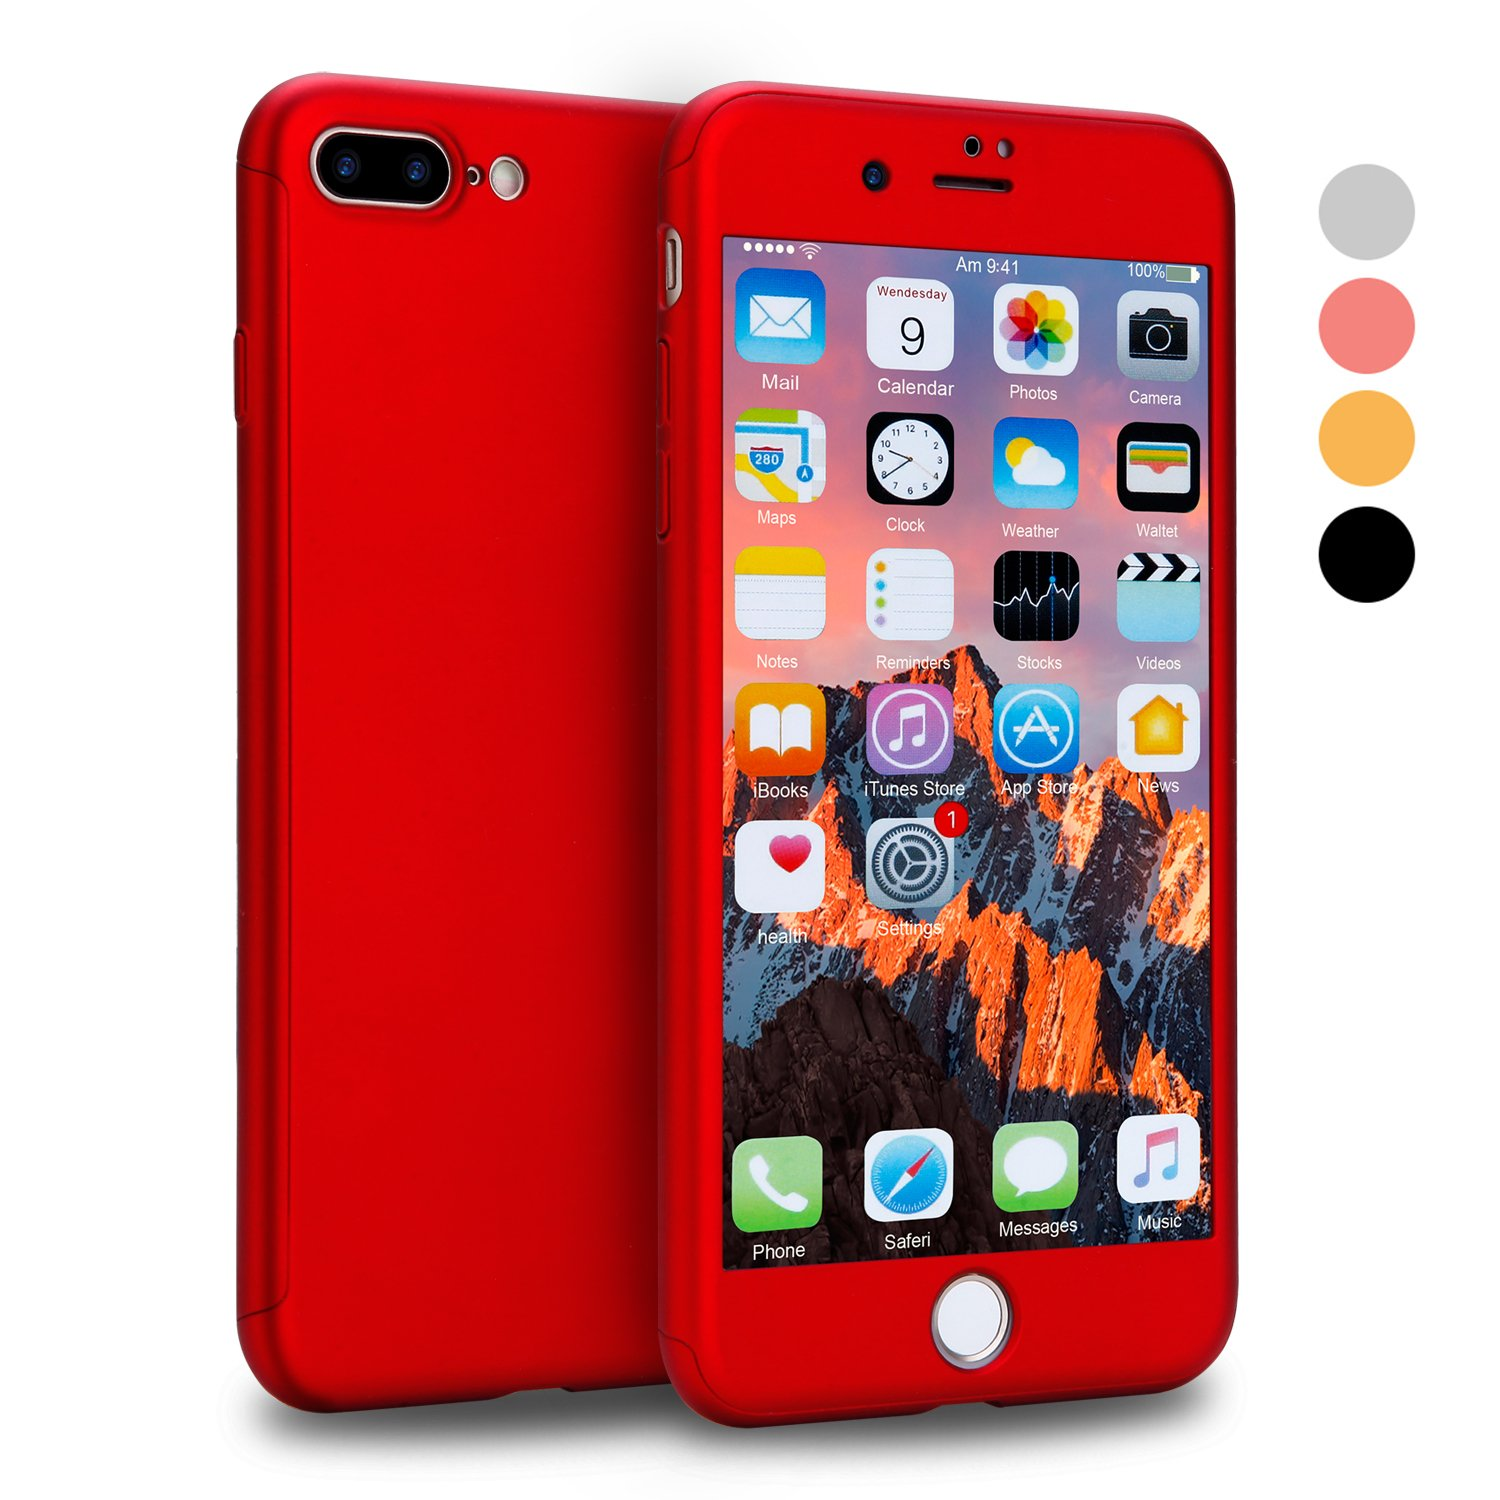 iPhone 8 Plus Case, VANSIN 360 Full Body Protection Hard Slim Case Coated Non Slip Matte Surface with Tempered Glass Screen Protector for Apple iPhone 8 Plus Only (5.5-inch) - Red 8p-360-r